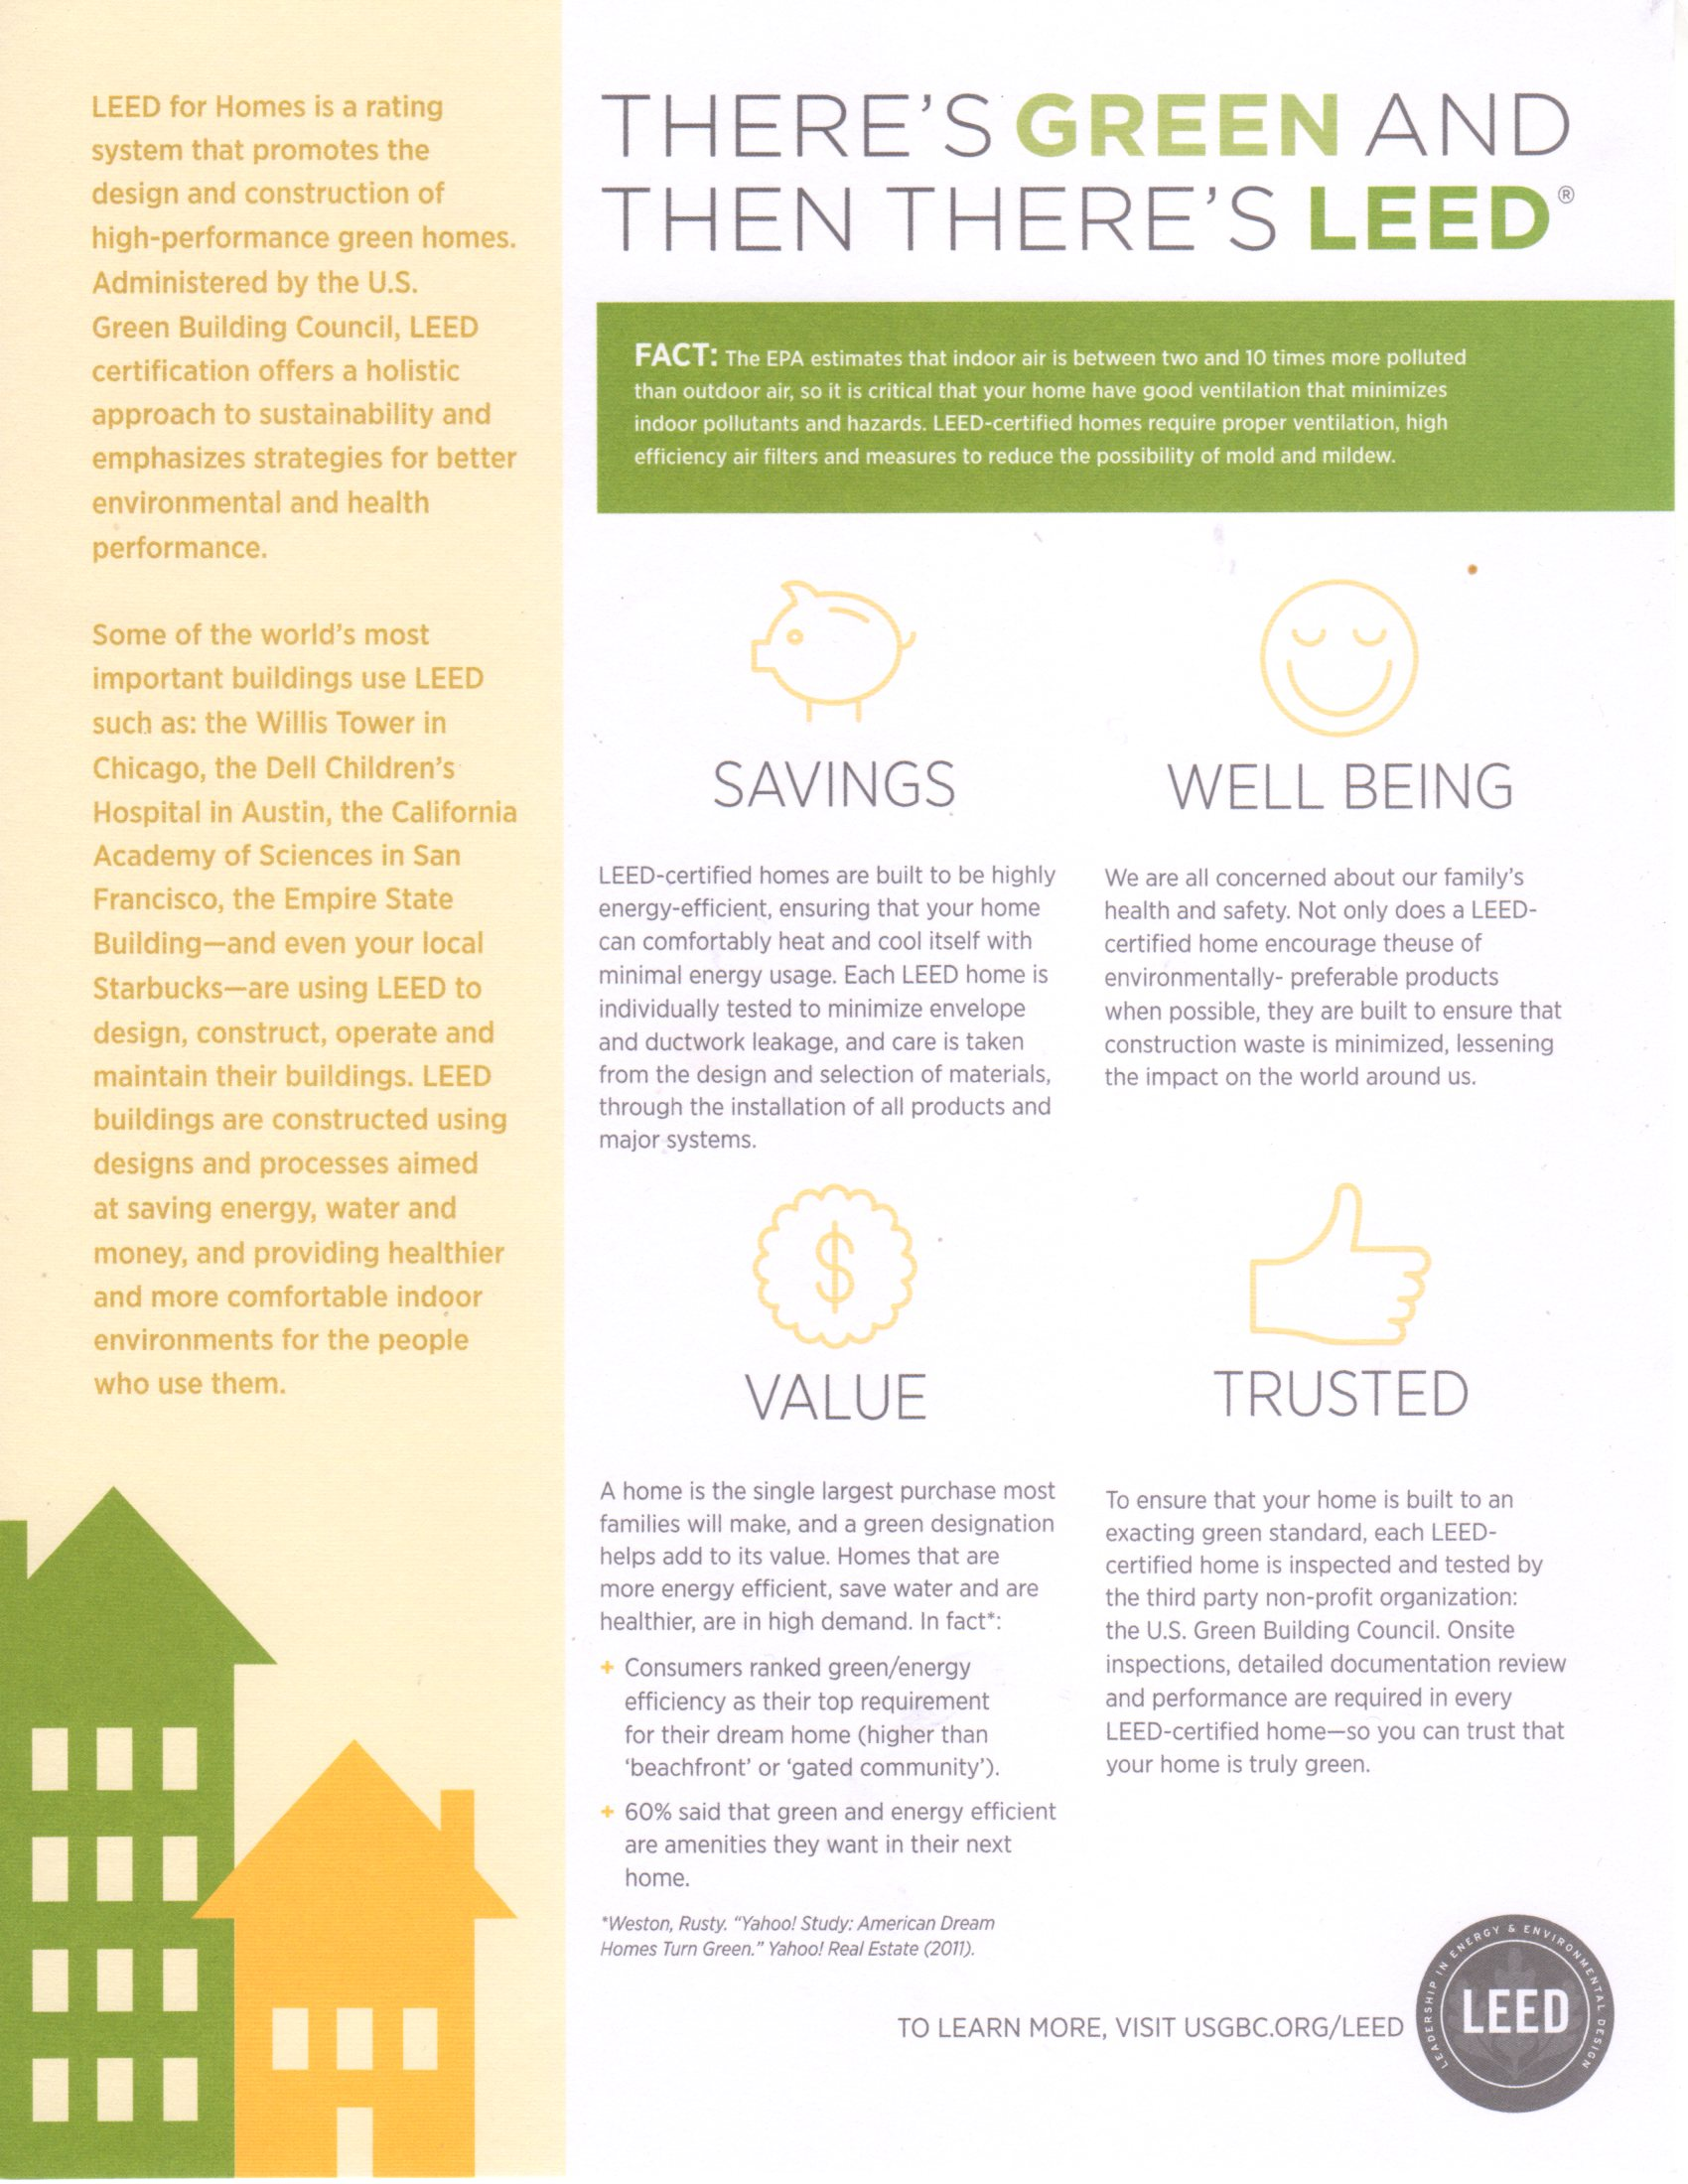 LEEDS - Energy Saving Ratings Information